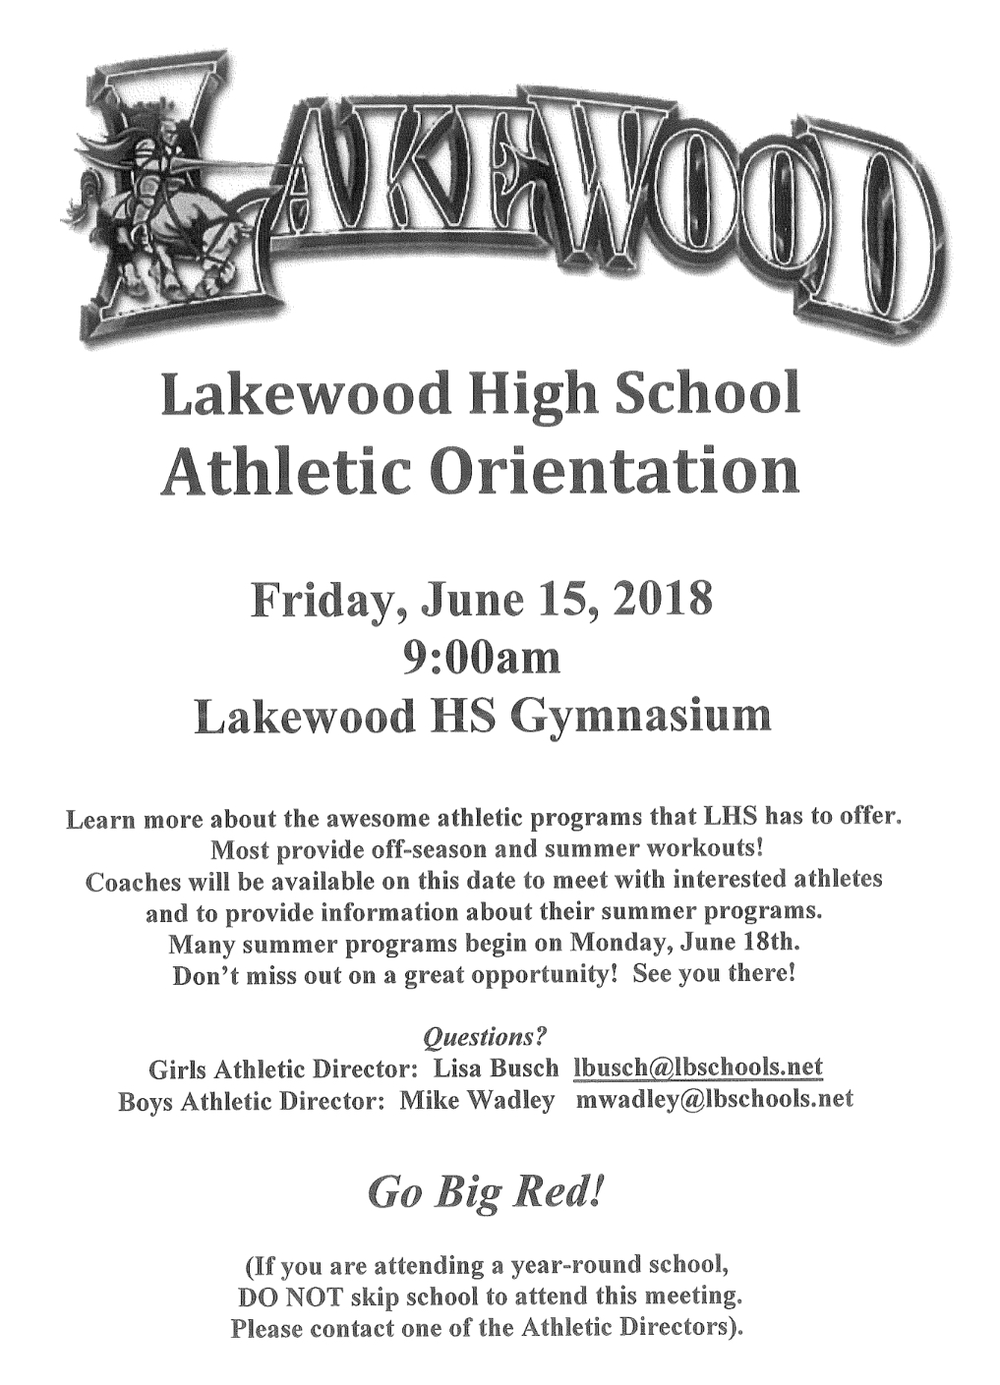 Athletics Orientation flyer